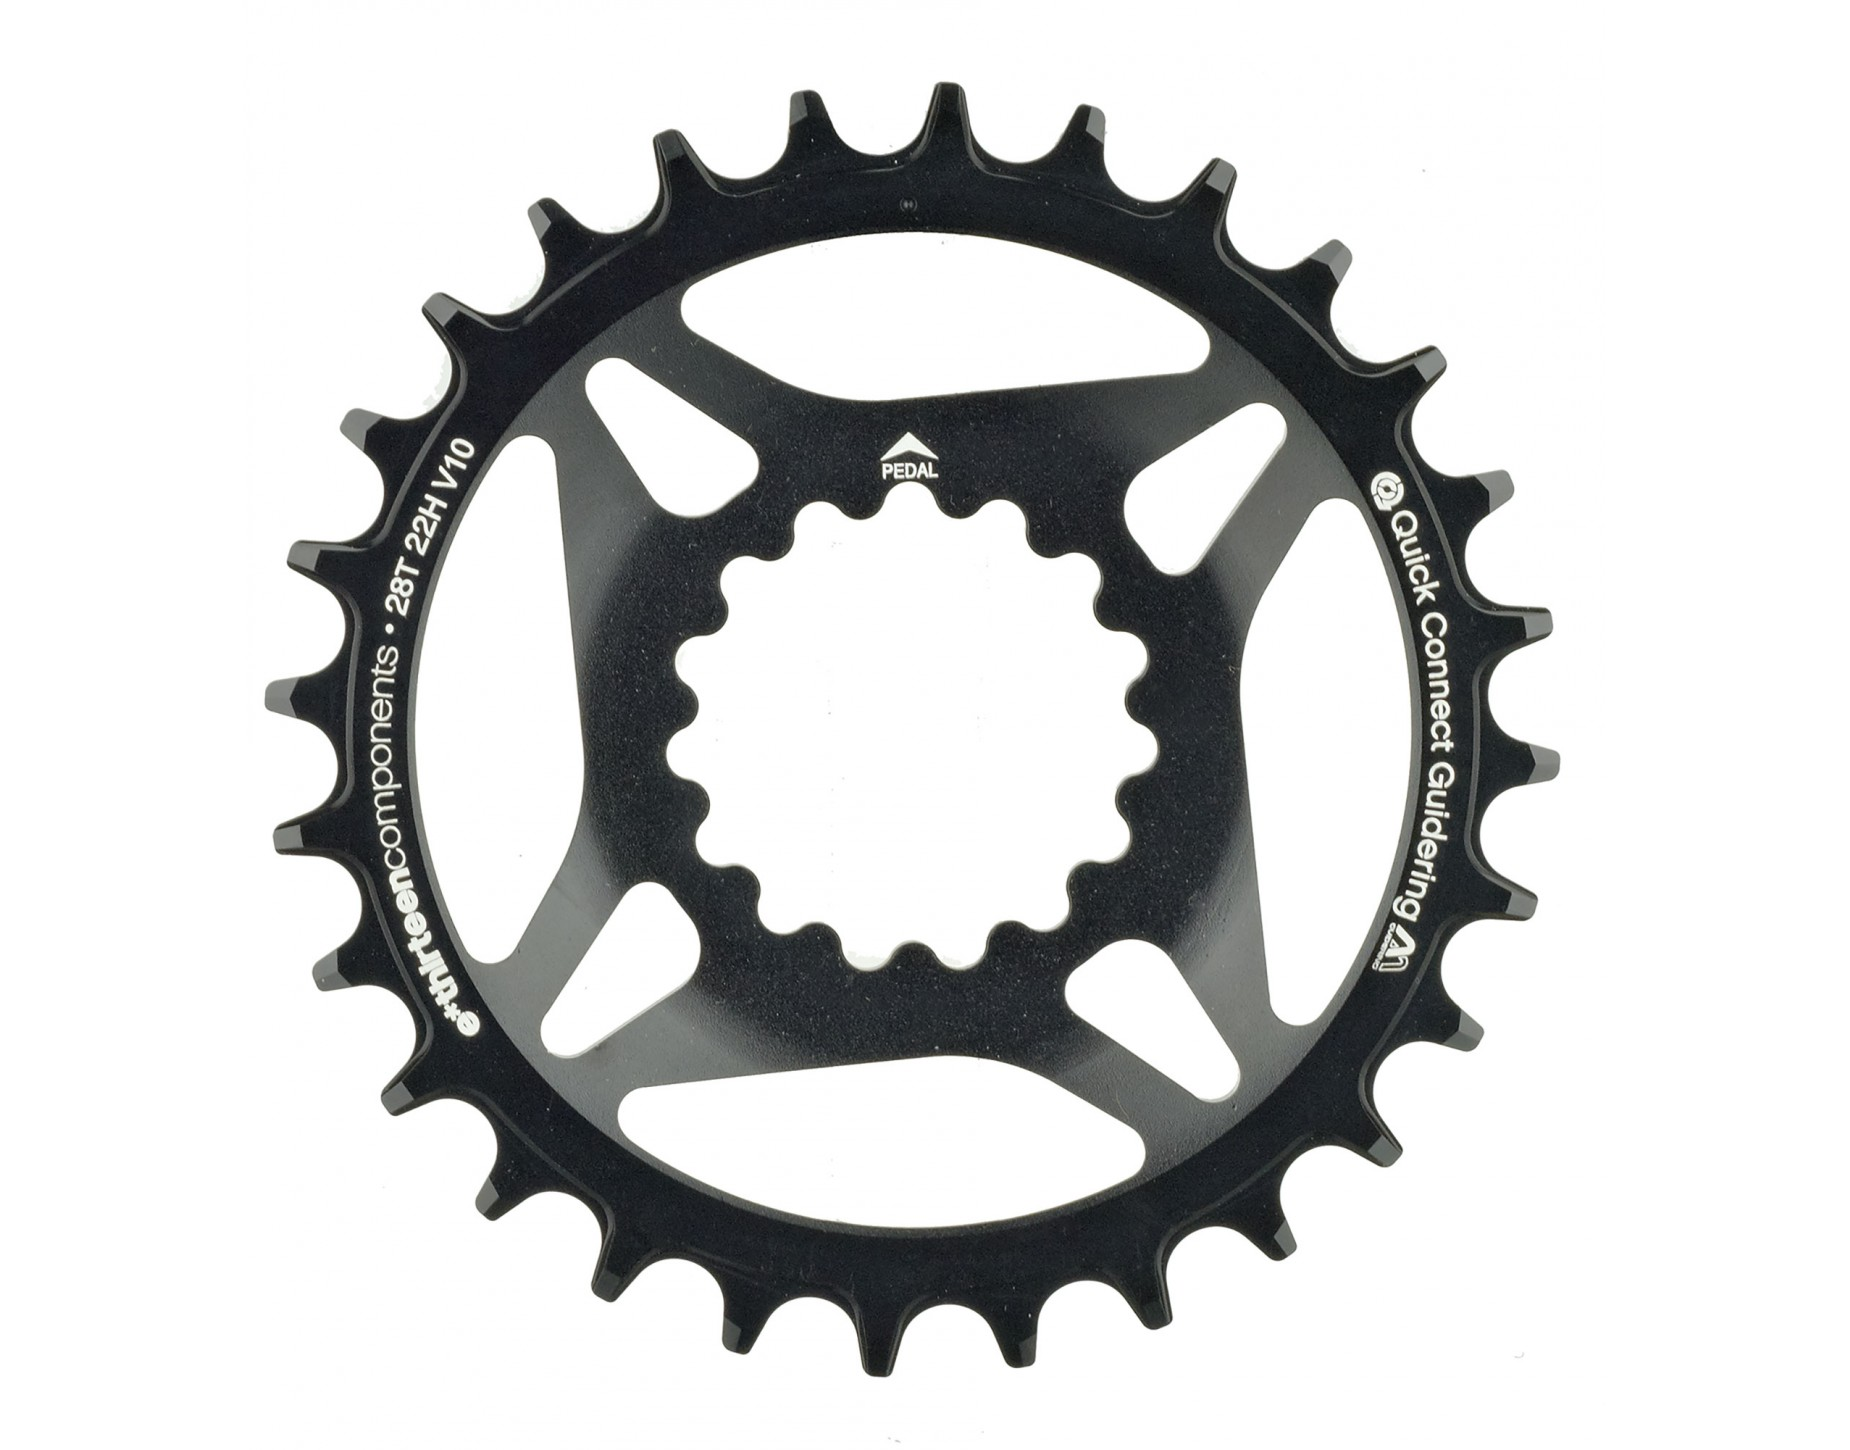 E13 Ethirteen Guidering M Direct Mount Chainring Everything You Crank